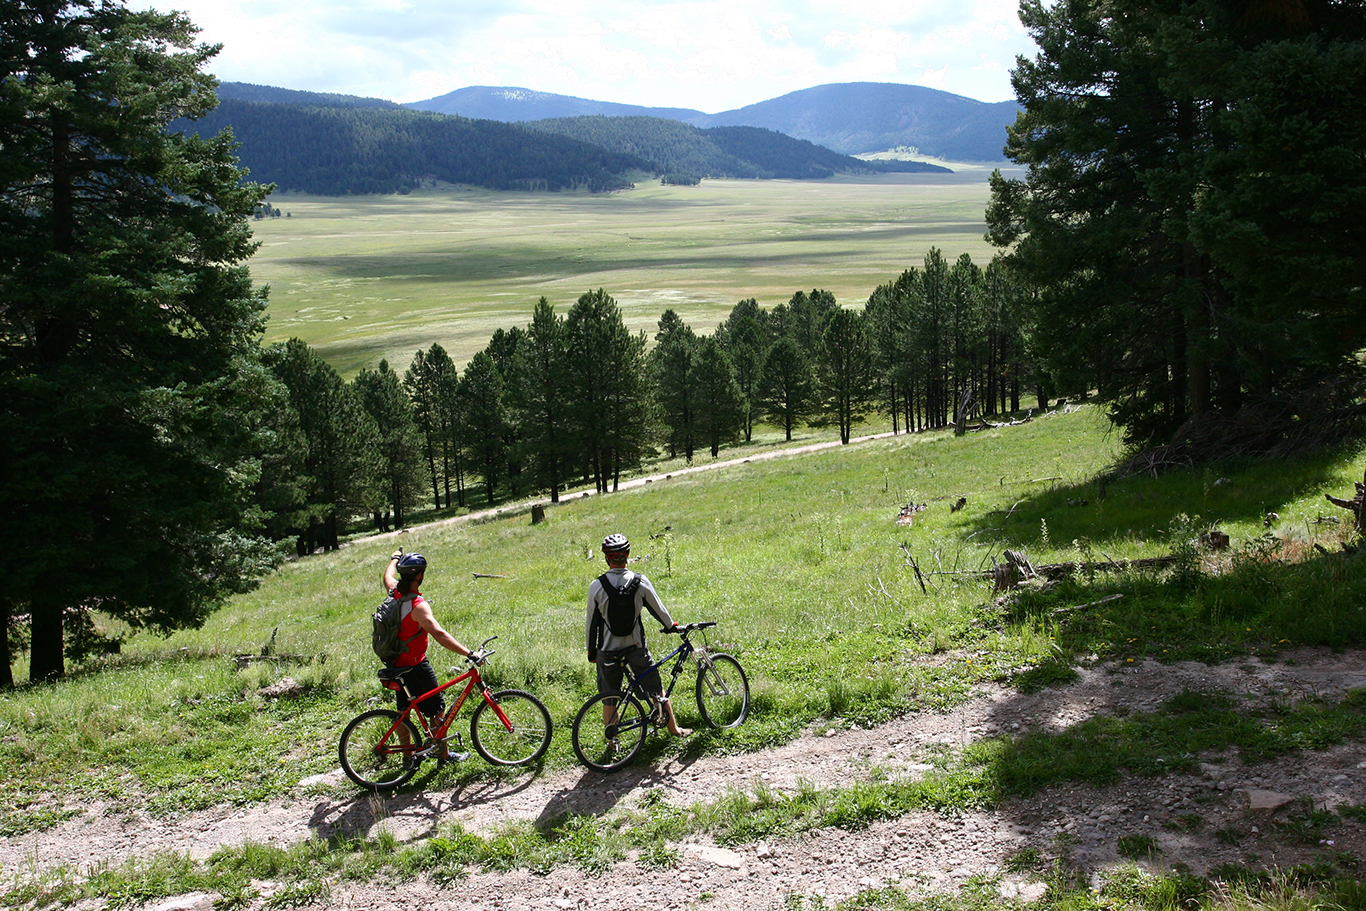 Mountain bikers stop to admire the Valle Grande | Photo by: NPS